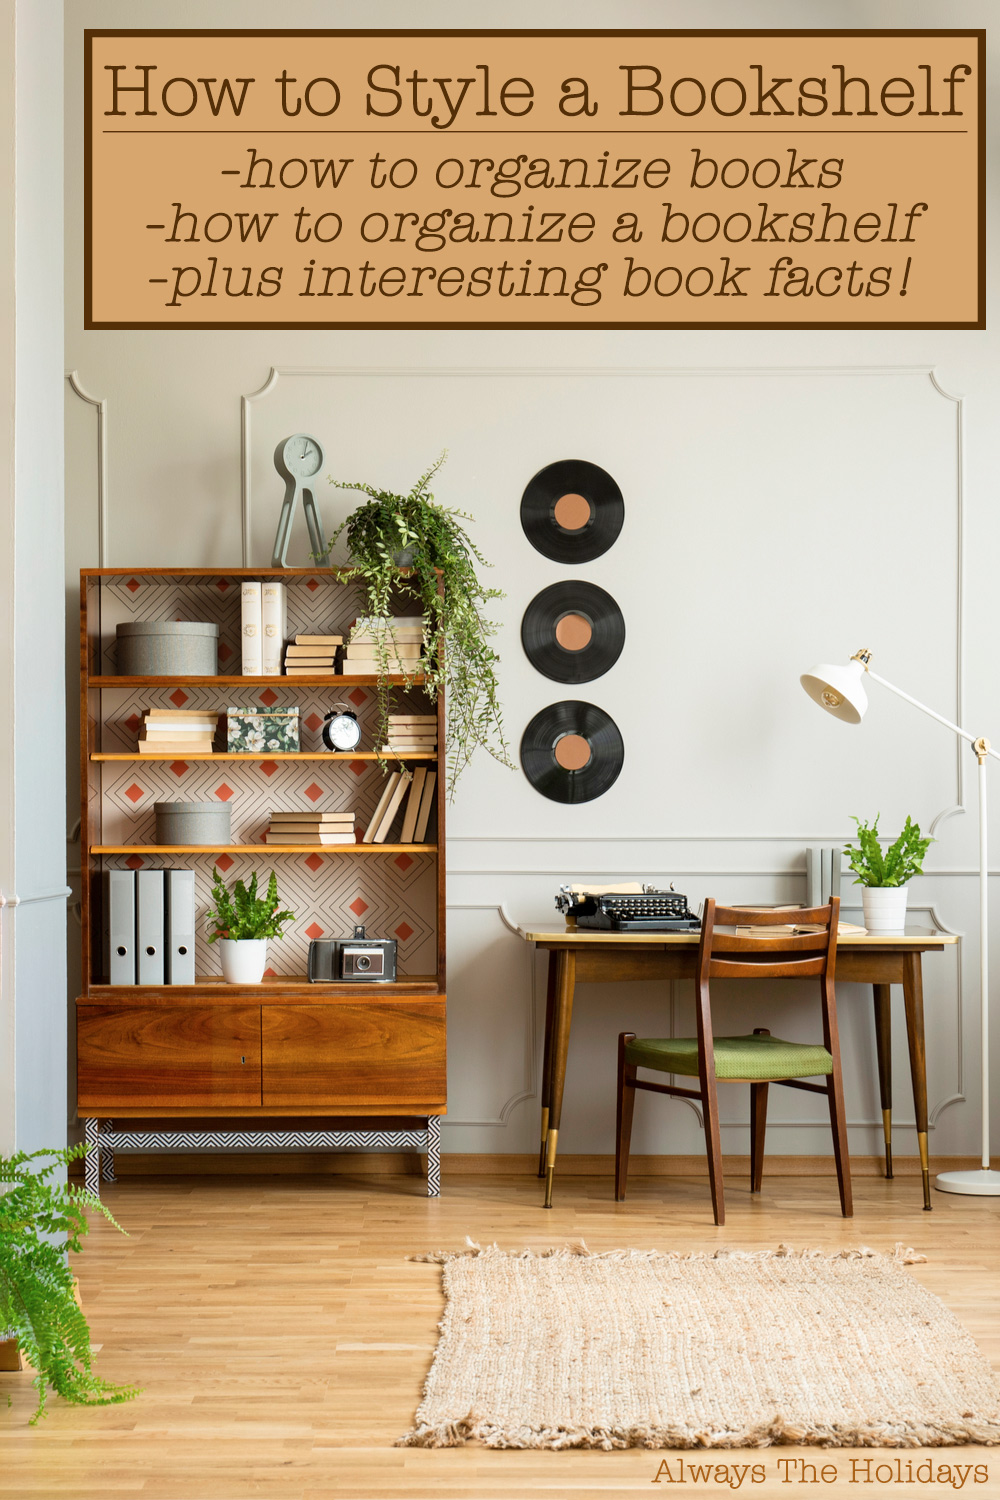 A styled bookshelf next to a desk in a minimalist room with a text overlay with inspiration for how to style a bookshelf.